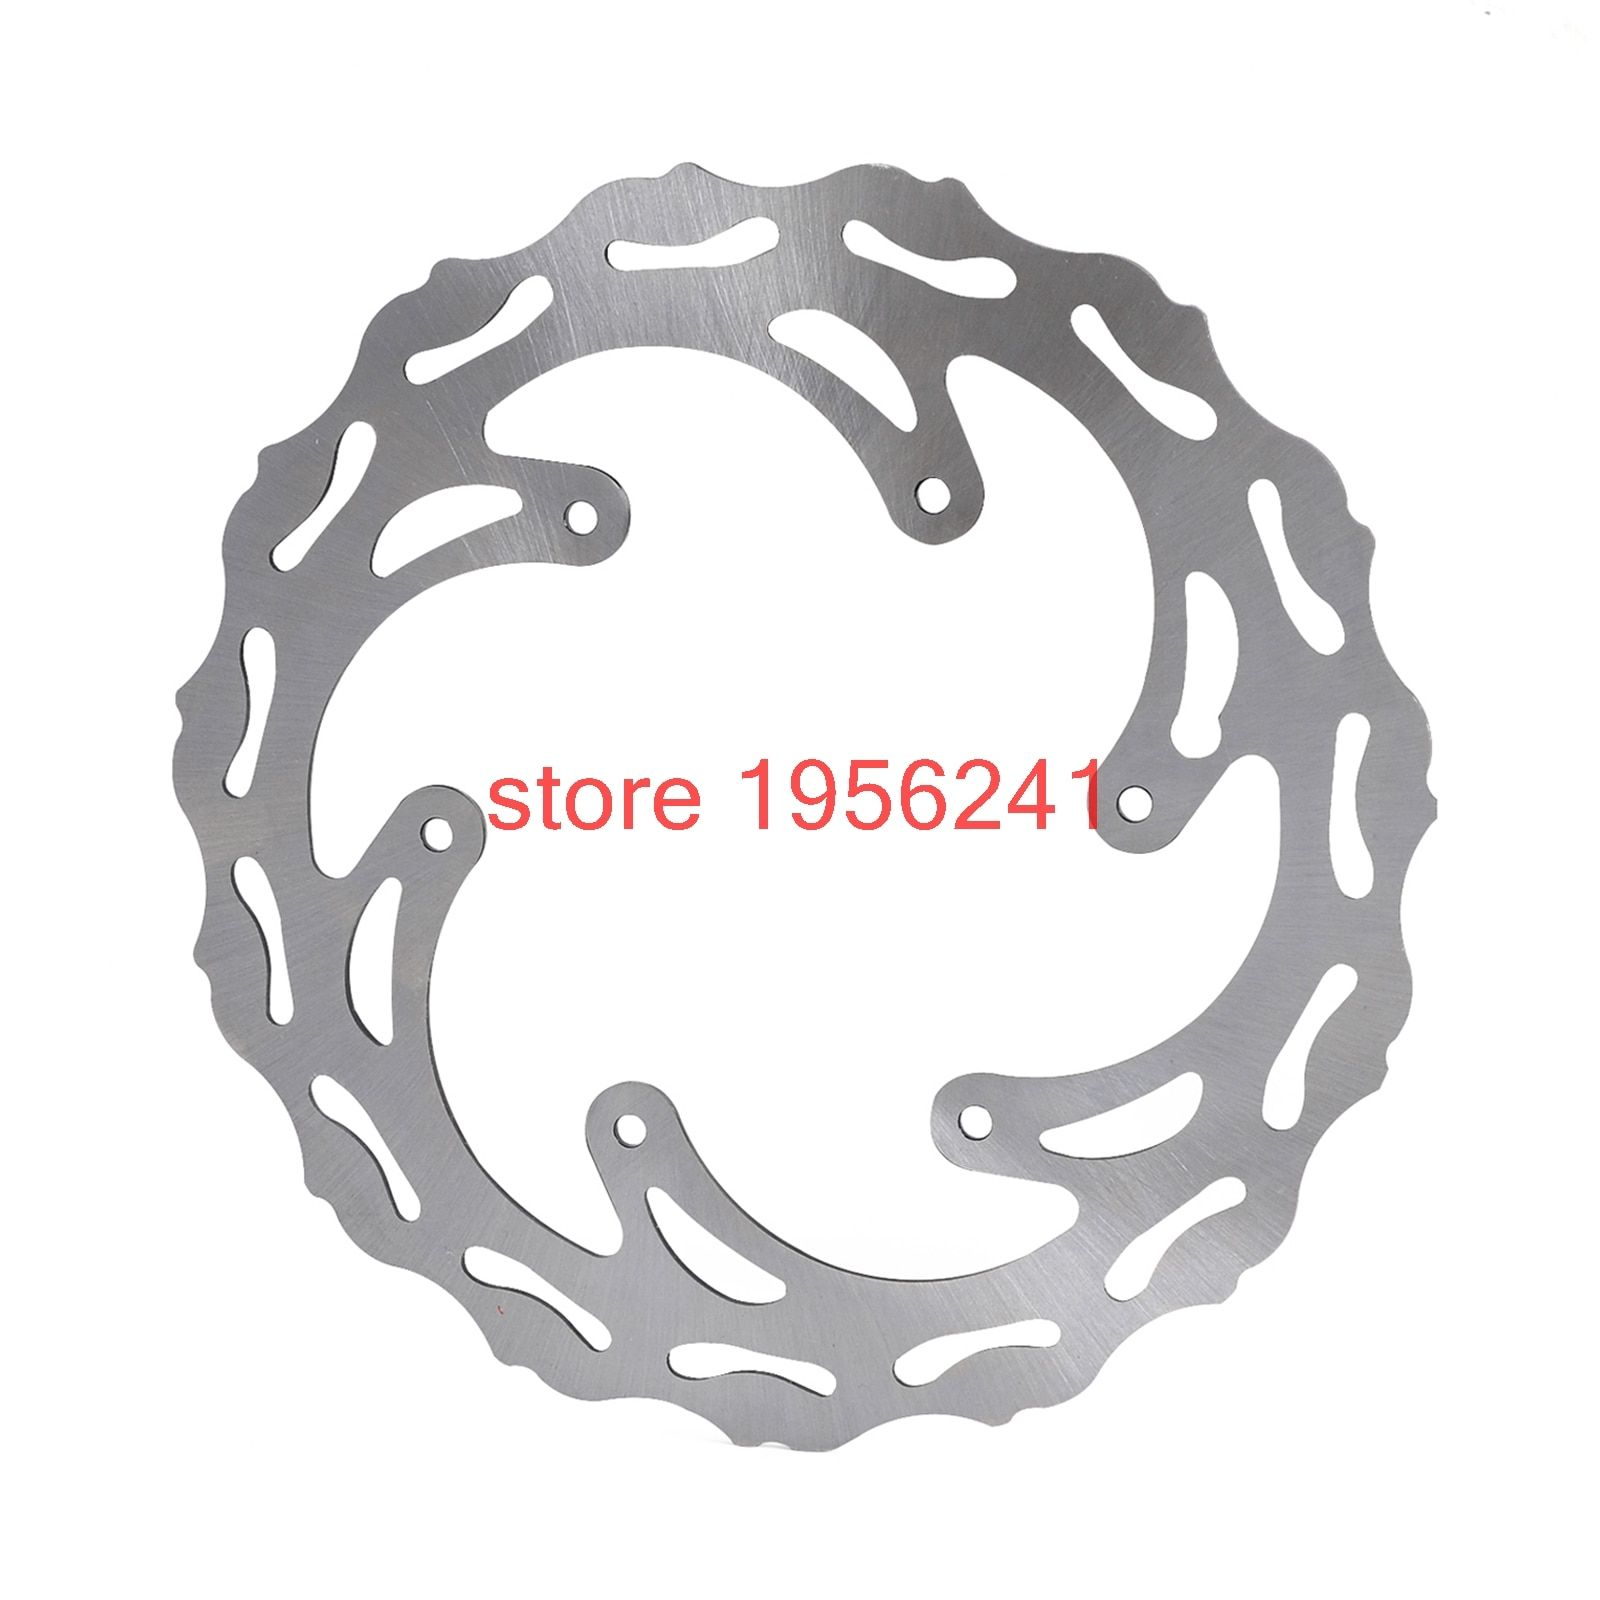 Motorcycle Front Brake Disc For KTM 125 200 250 300 400 450 500 525 530 XC SX SXF SX-F EXC EXCF EXCR EXC-F EXC-R NEW